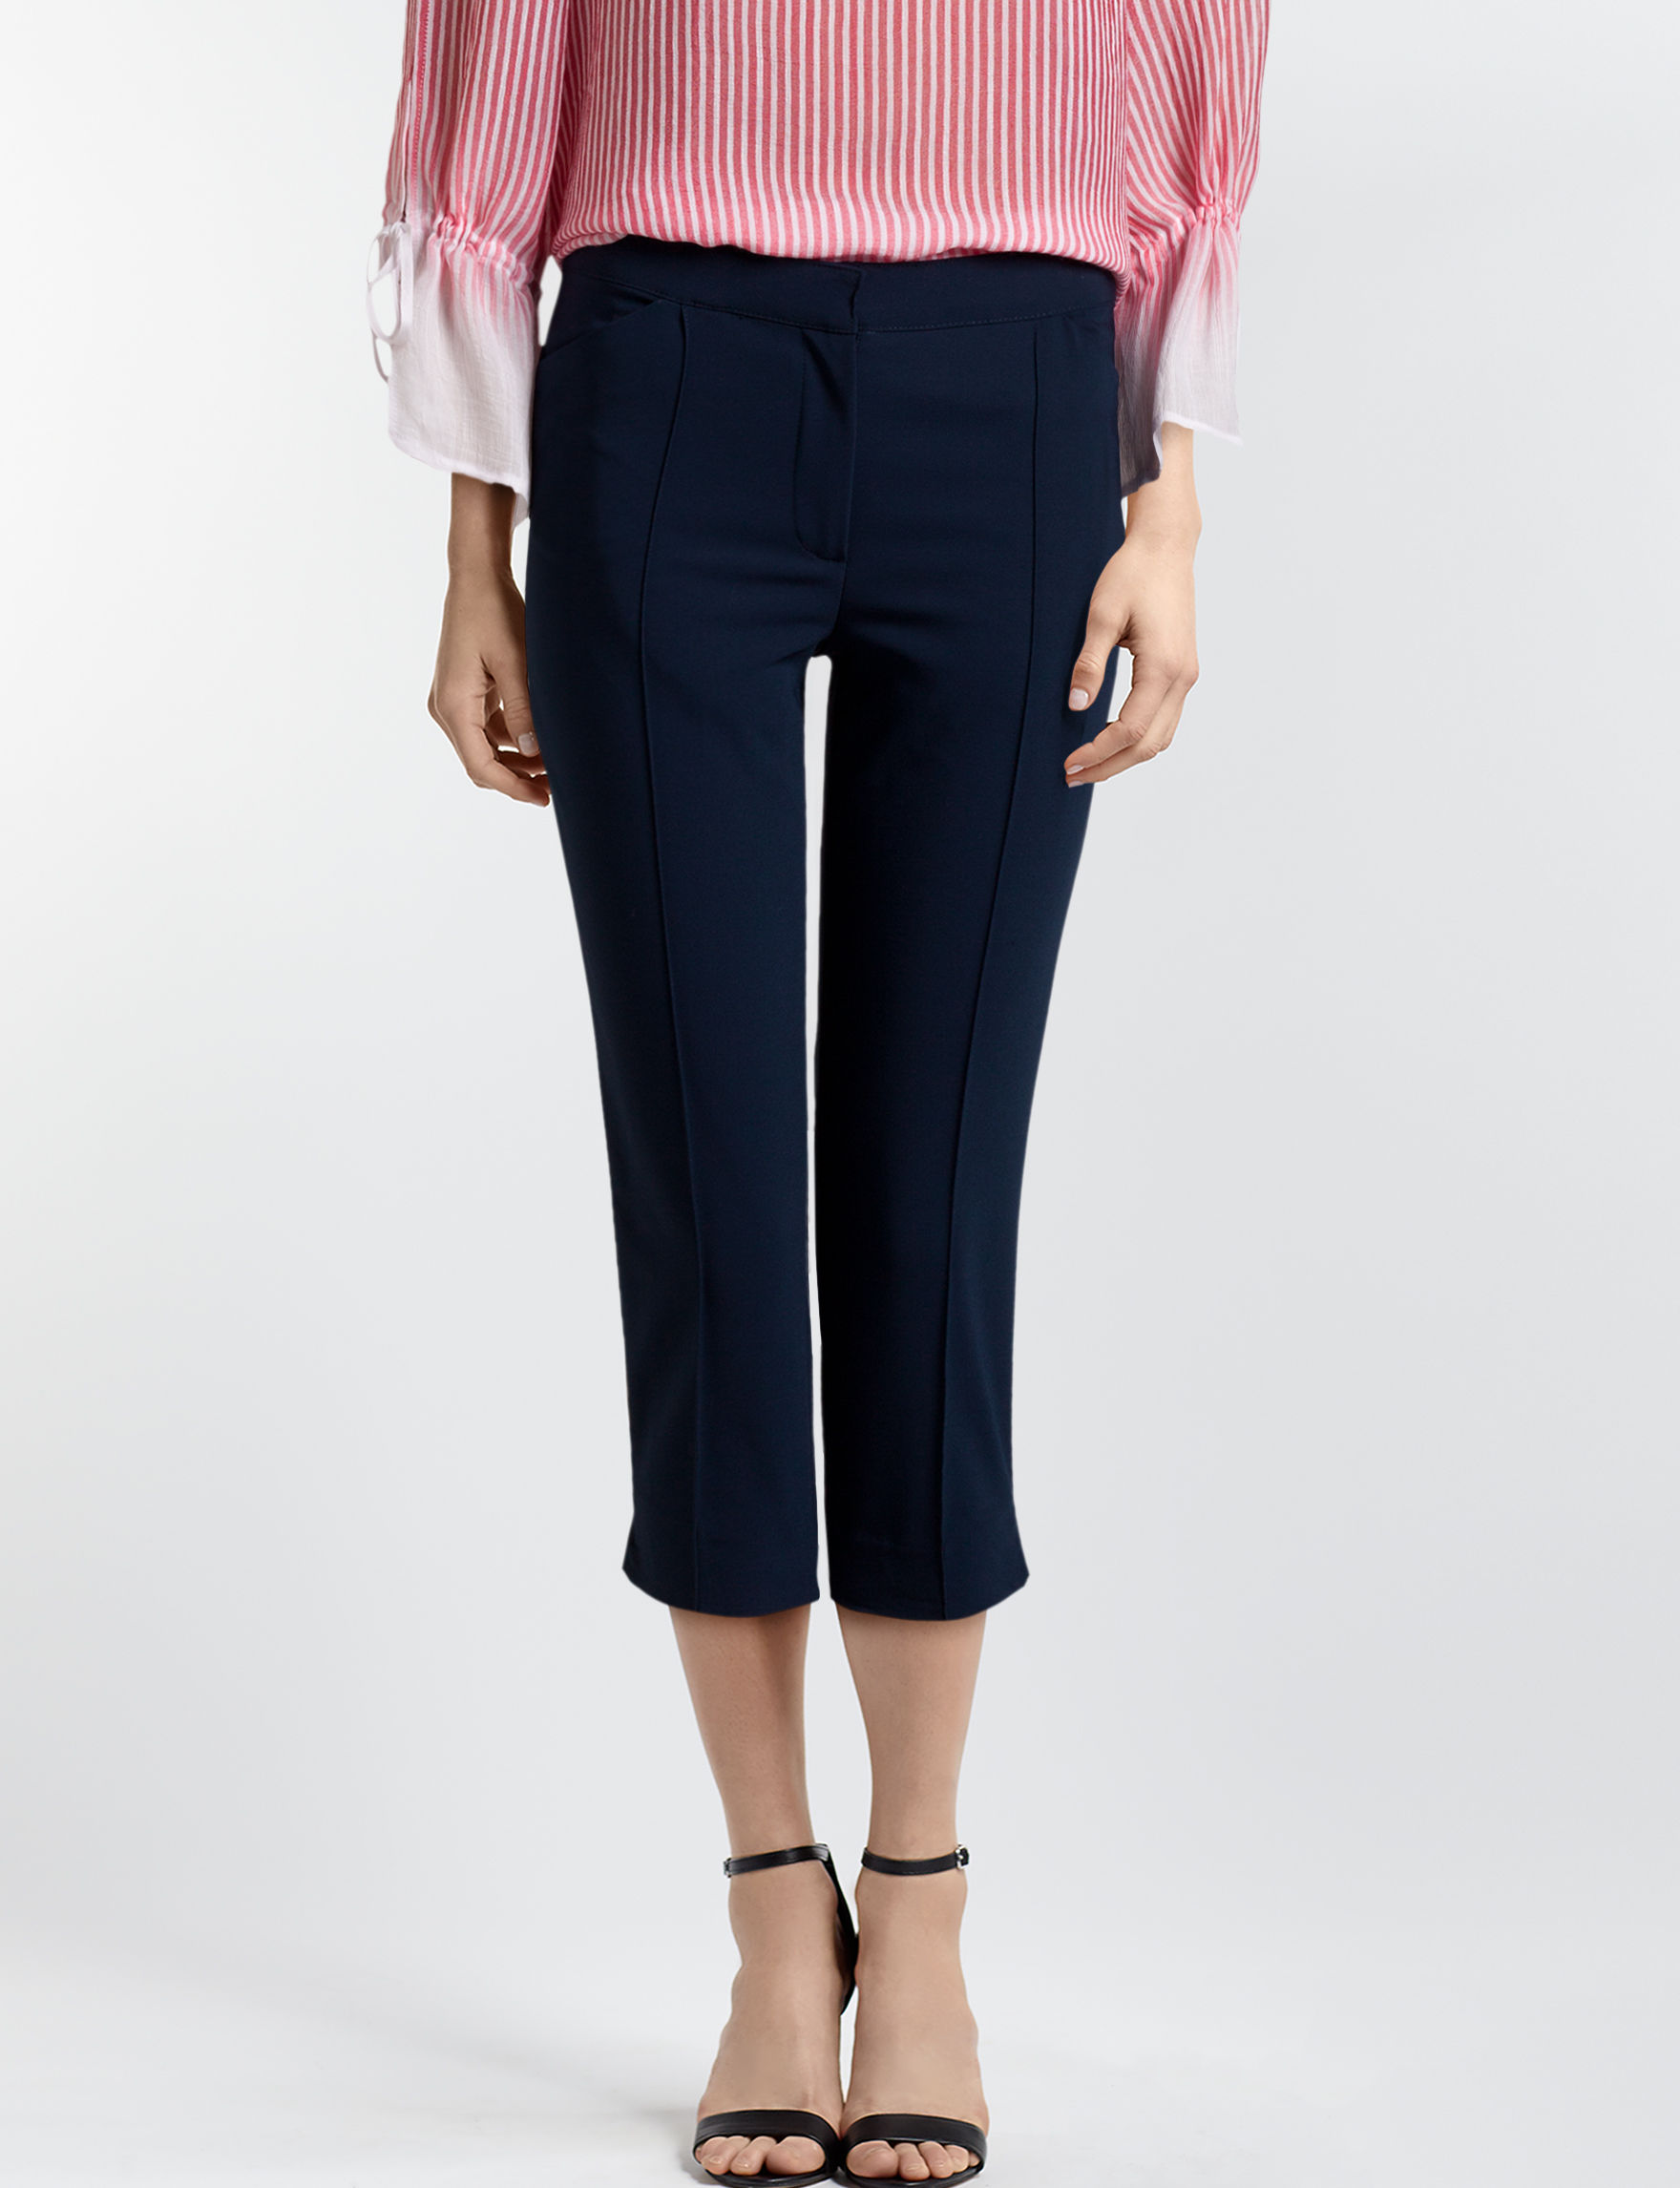 Ruby Road Navy Capris & Crops